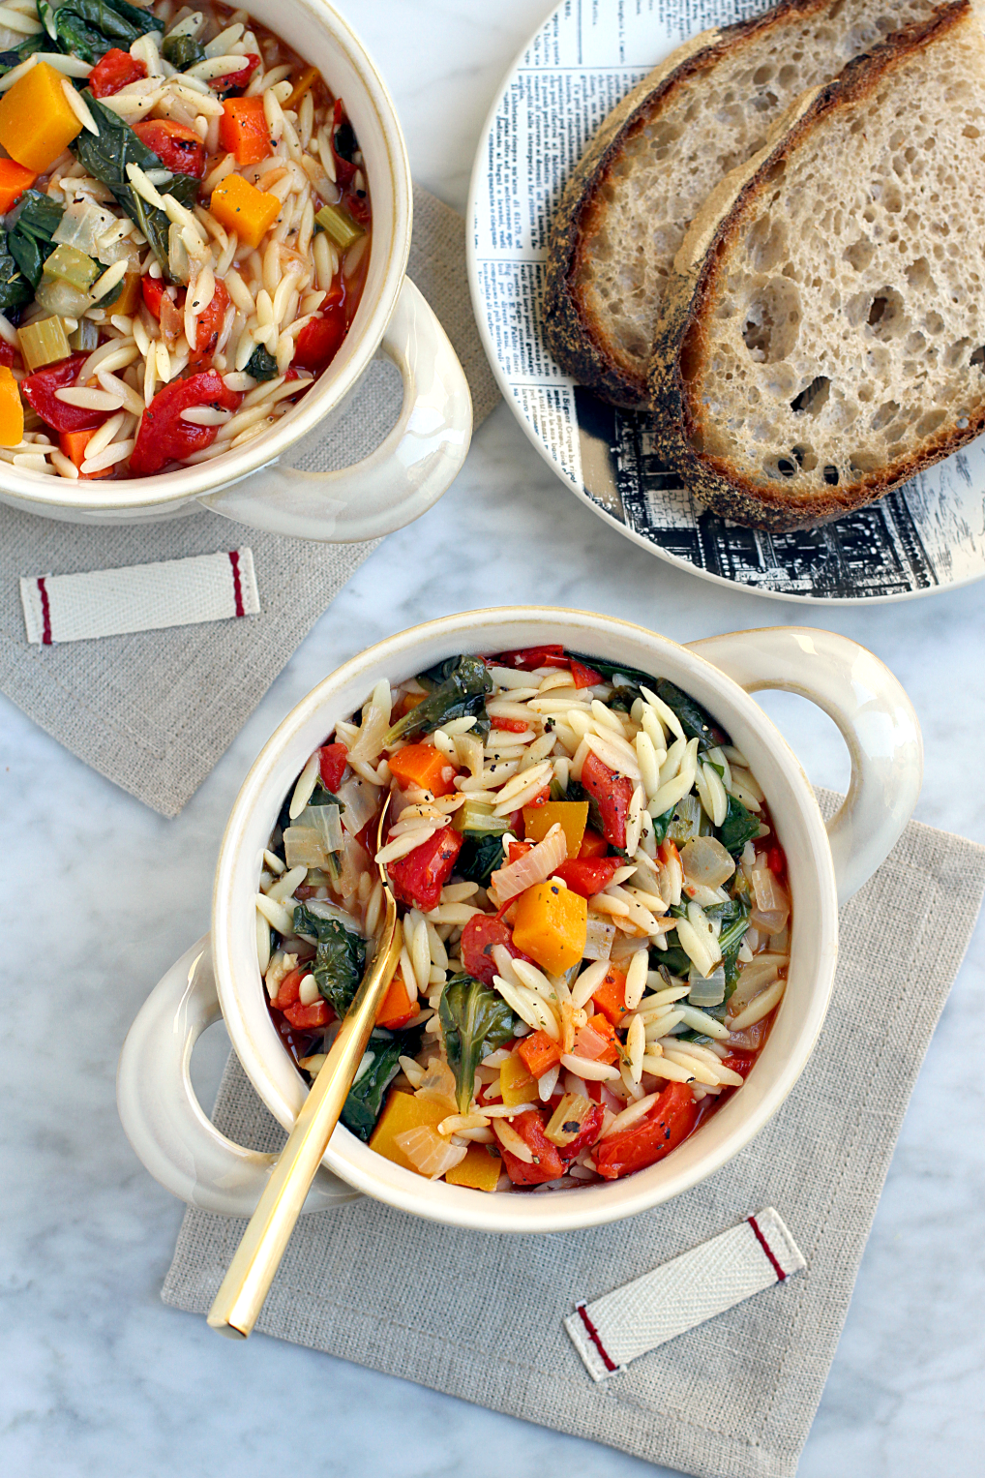 Image of vegetable and orzo soup from the top.